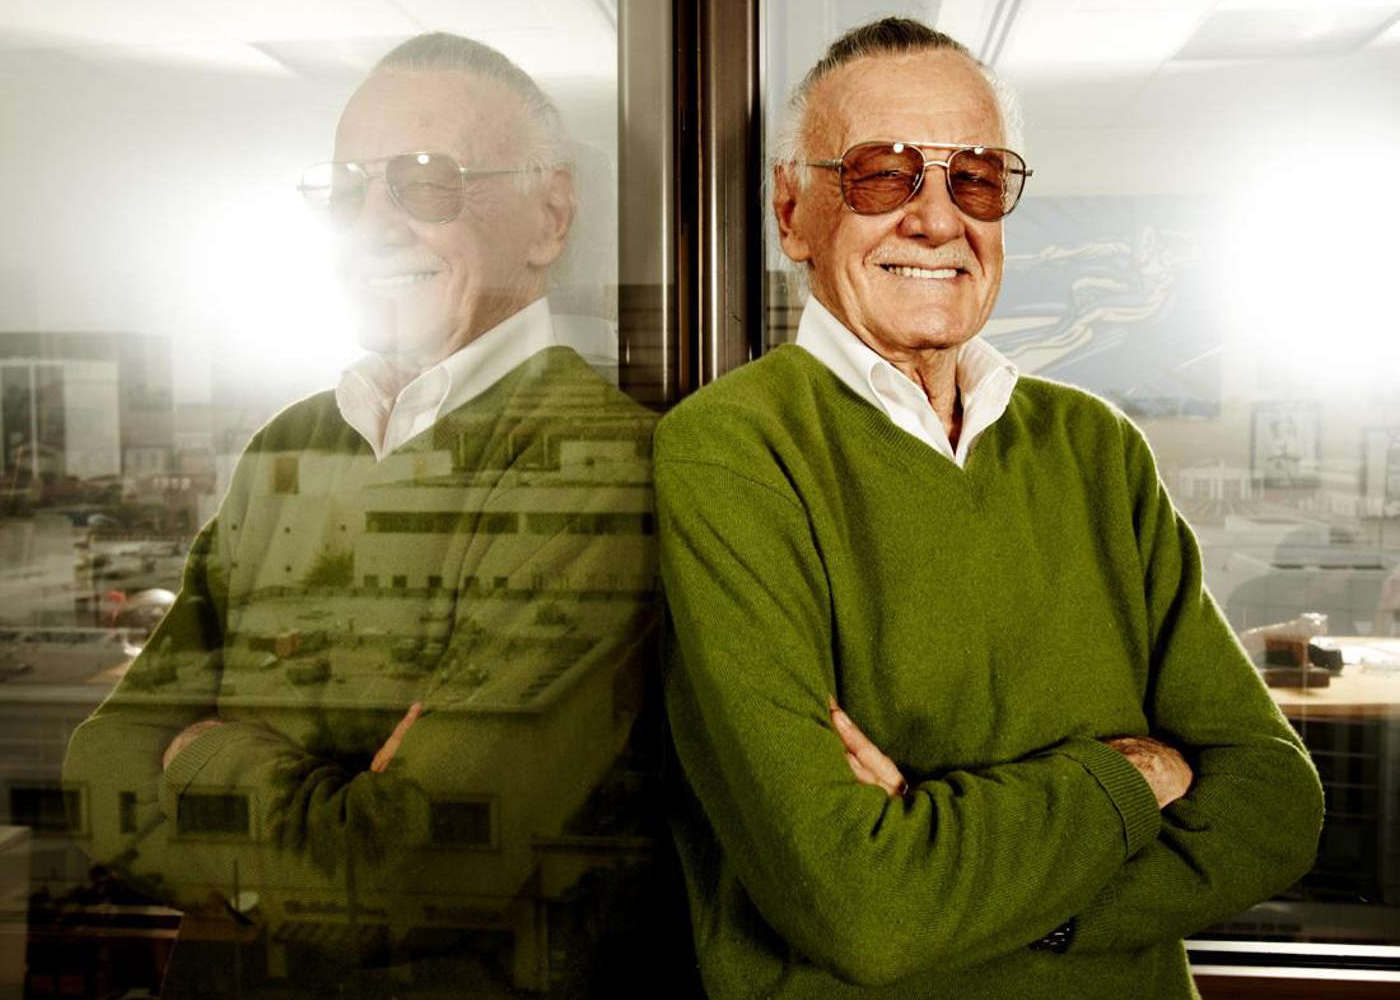 Fans Heartbroken Over Videos of Stan Lee Having Difficulty at the Silicon Valley Comic-Con